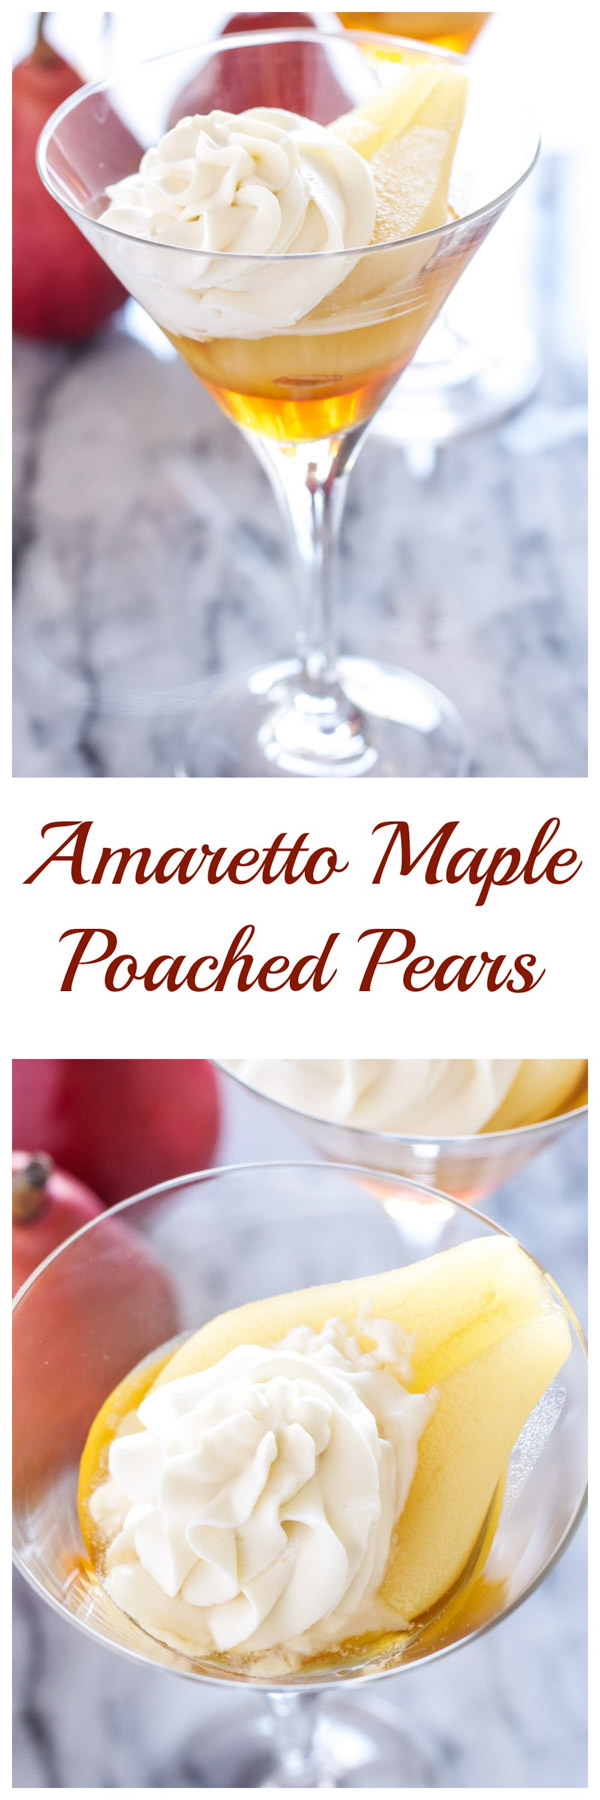 Amaretto Maple Poached Pears | Recipe Runner | Pears are perfect for ...